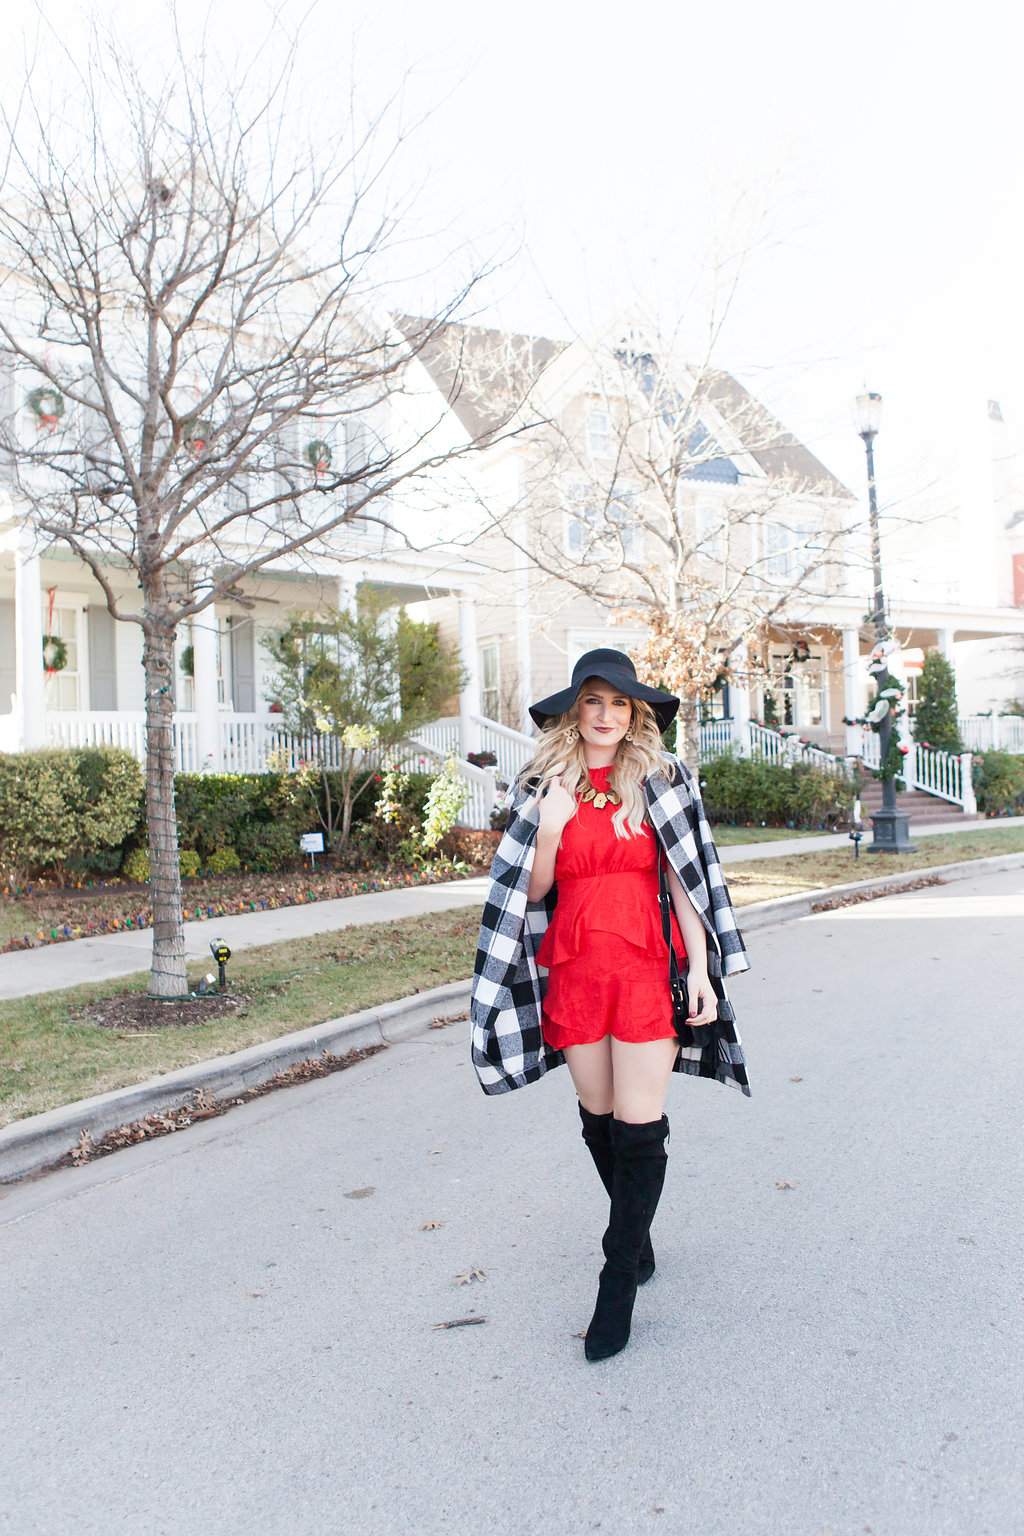 Holiday Inspired Look | Red Dress | Audrey Madison Stowe a fashion and lifestyle blog - 5 Holiday Looks To Get Inspired by Texas fashion blogger Audrey Madison Stowe